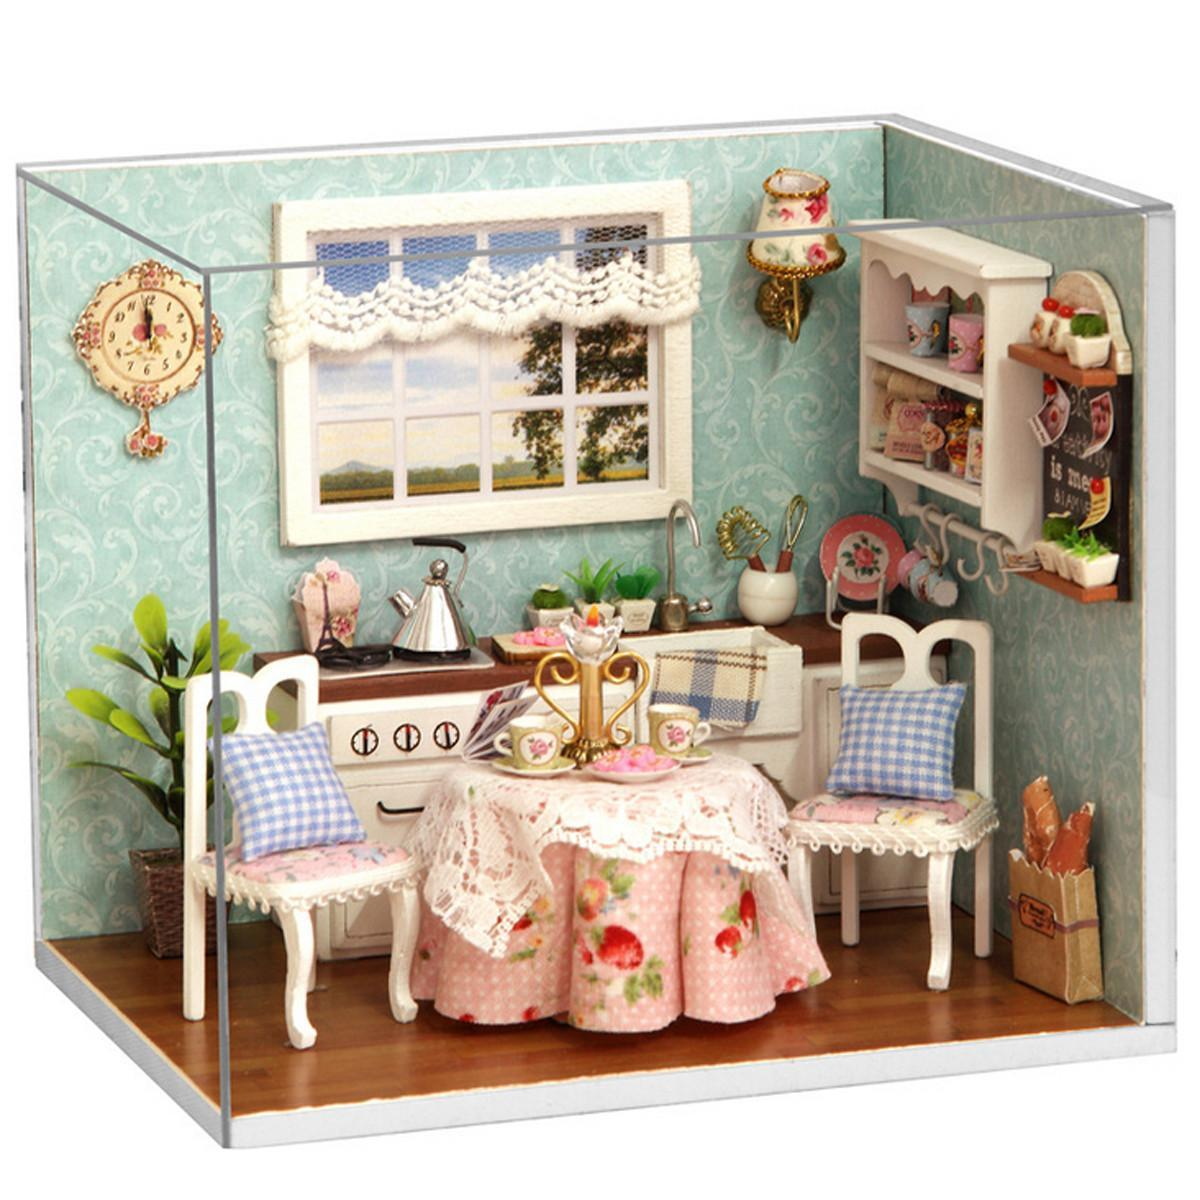 Diy 3d Wooden Dollhouse Miniature Dining Room Model Kit With Cover And Led  Furnitures Handcraft Miniature Kitchen Doll House Wood Dollhouse Furniture  ...